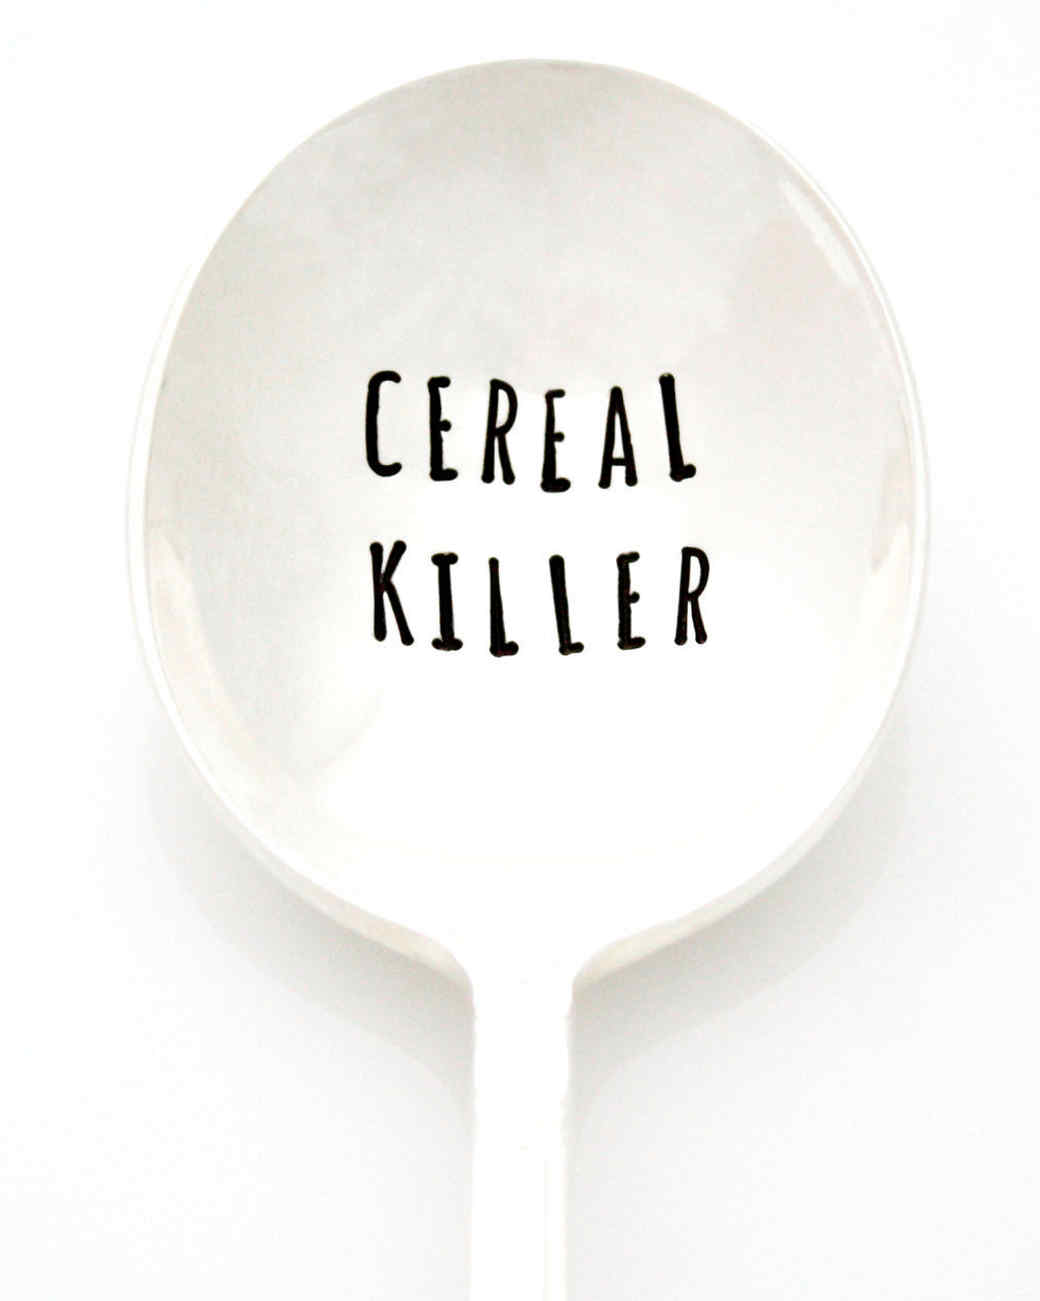 milkandhoneyluxuries-hand-stamped-spoon-0915.jpg